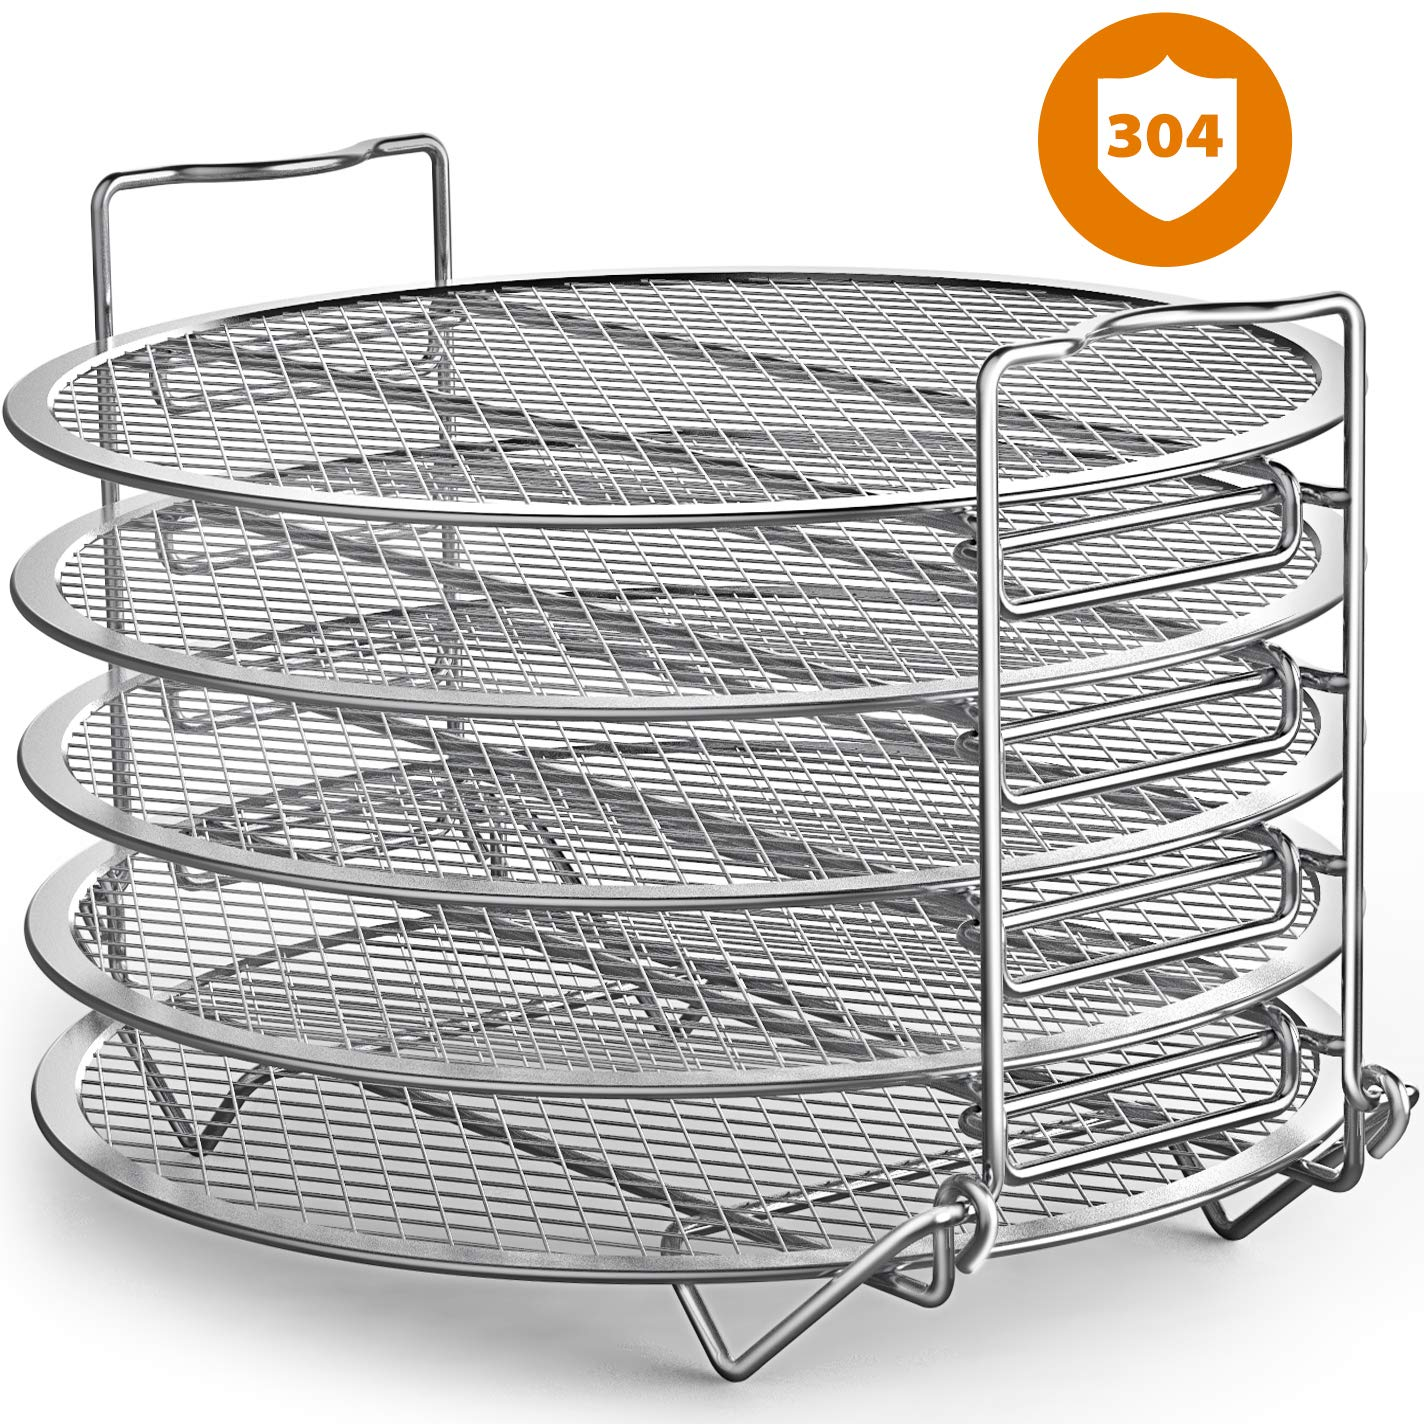 Goldlion Dehydrator Rack Stainless Steel Stand Accessories Compatible with Ninja Foodi Pressure Cooker and Air Fryer 6.5 and 8 Quart, Instant Pot Duo Crisp 8 Qt